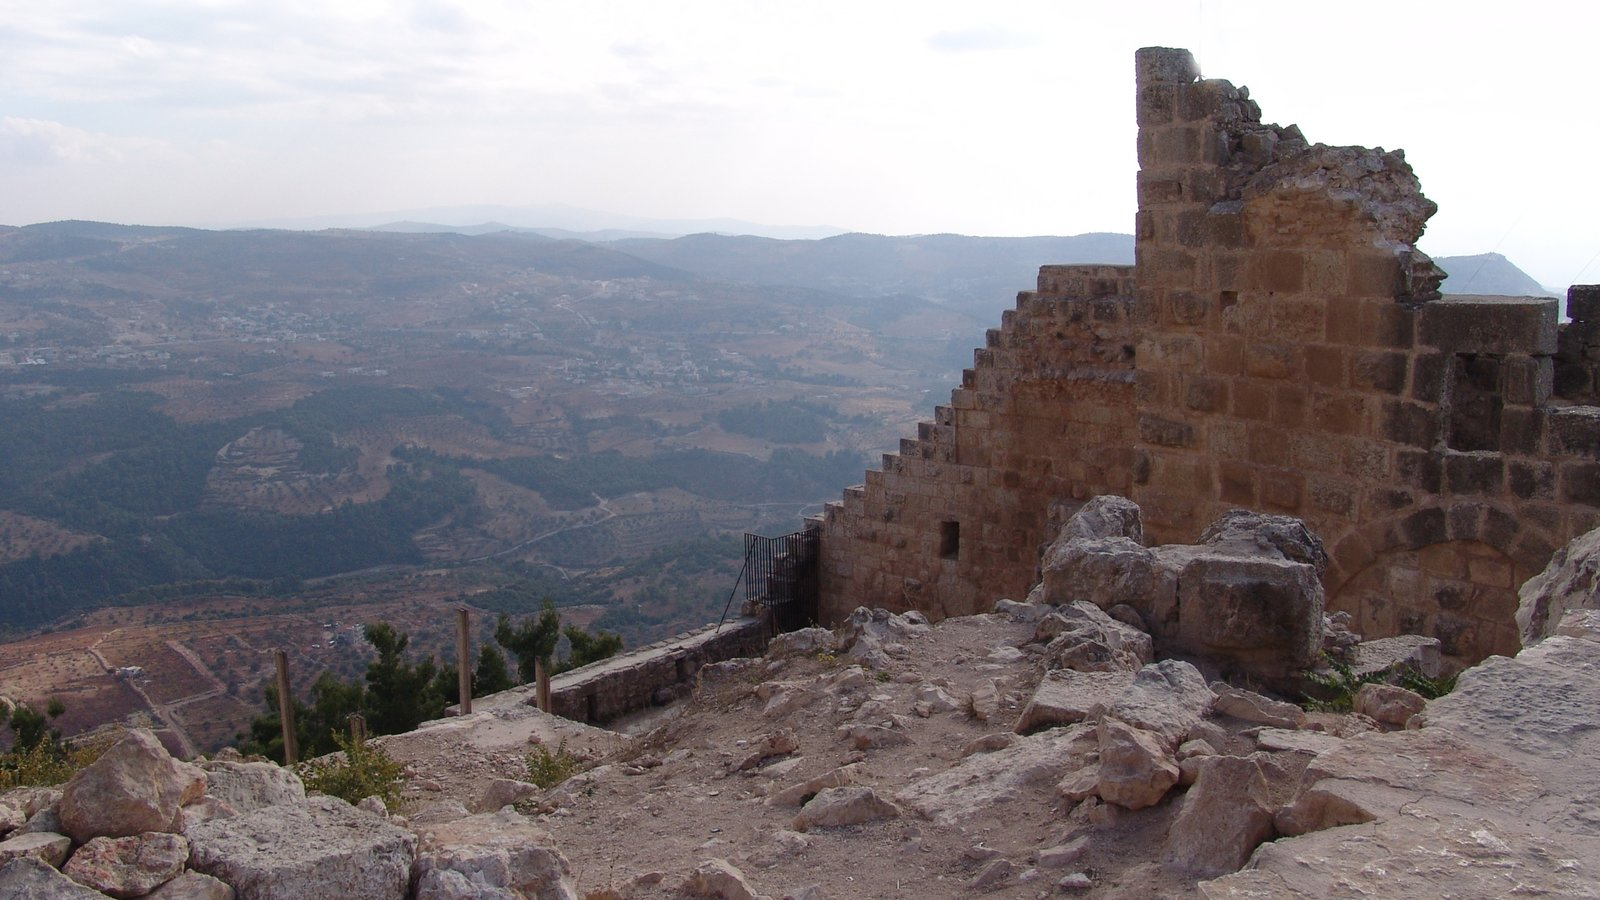 Ajloun featuring heritage elements, a ruin and heritage architecture